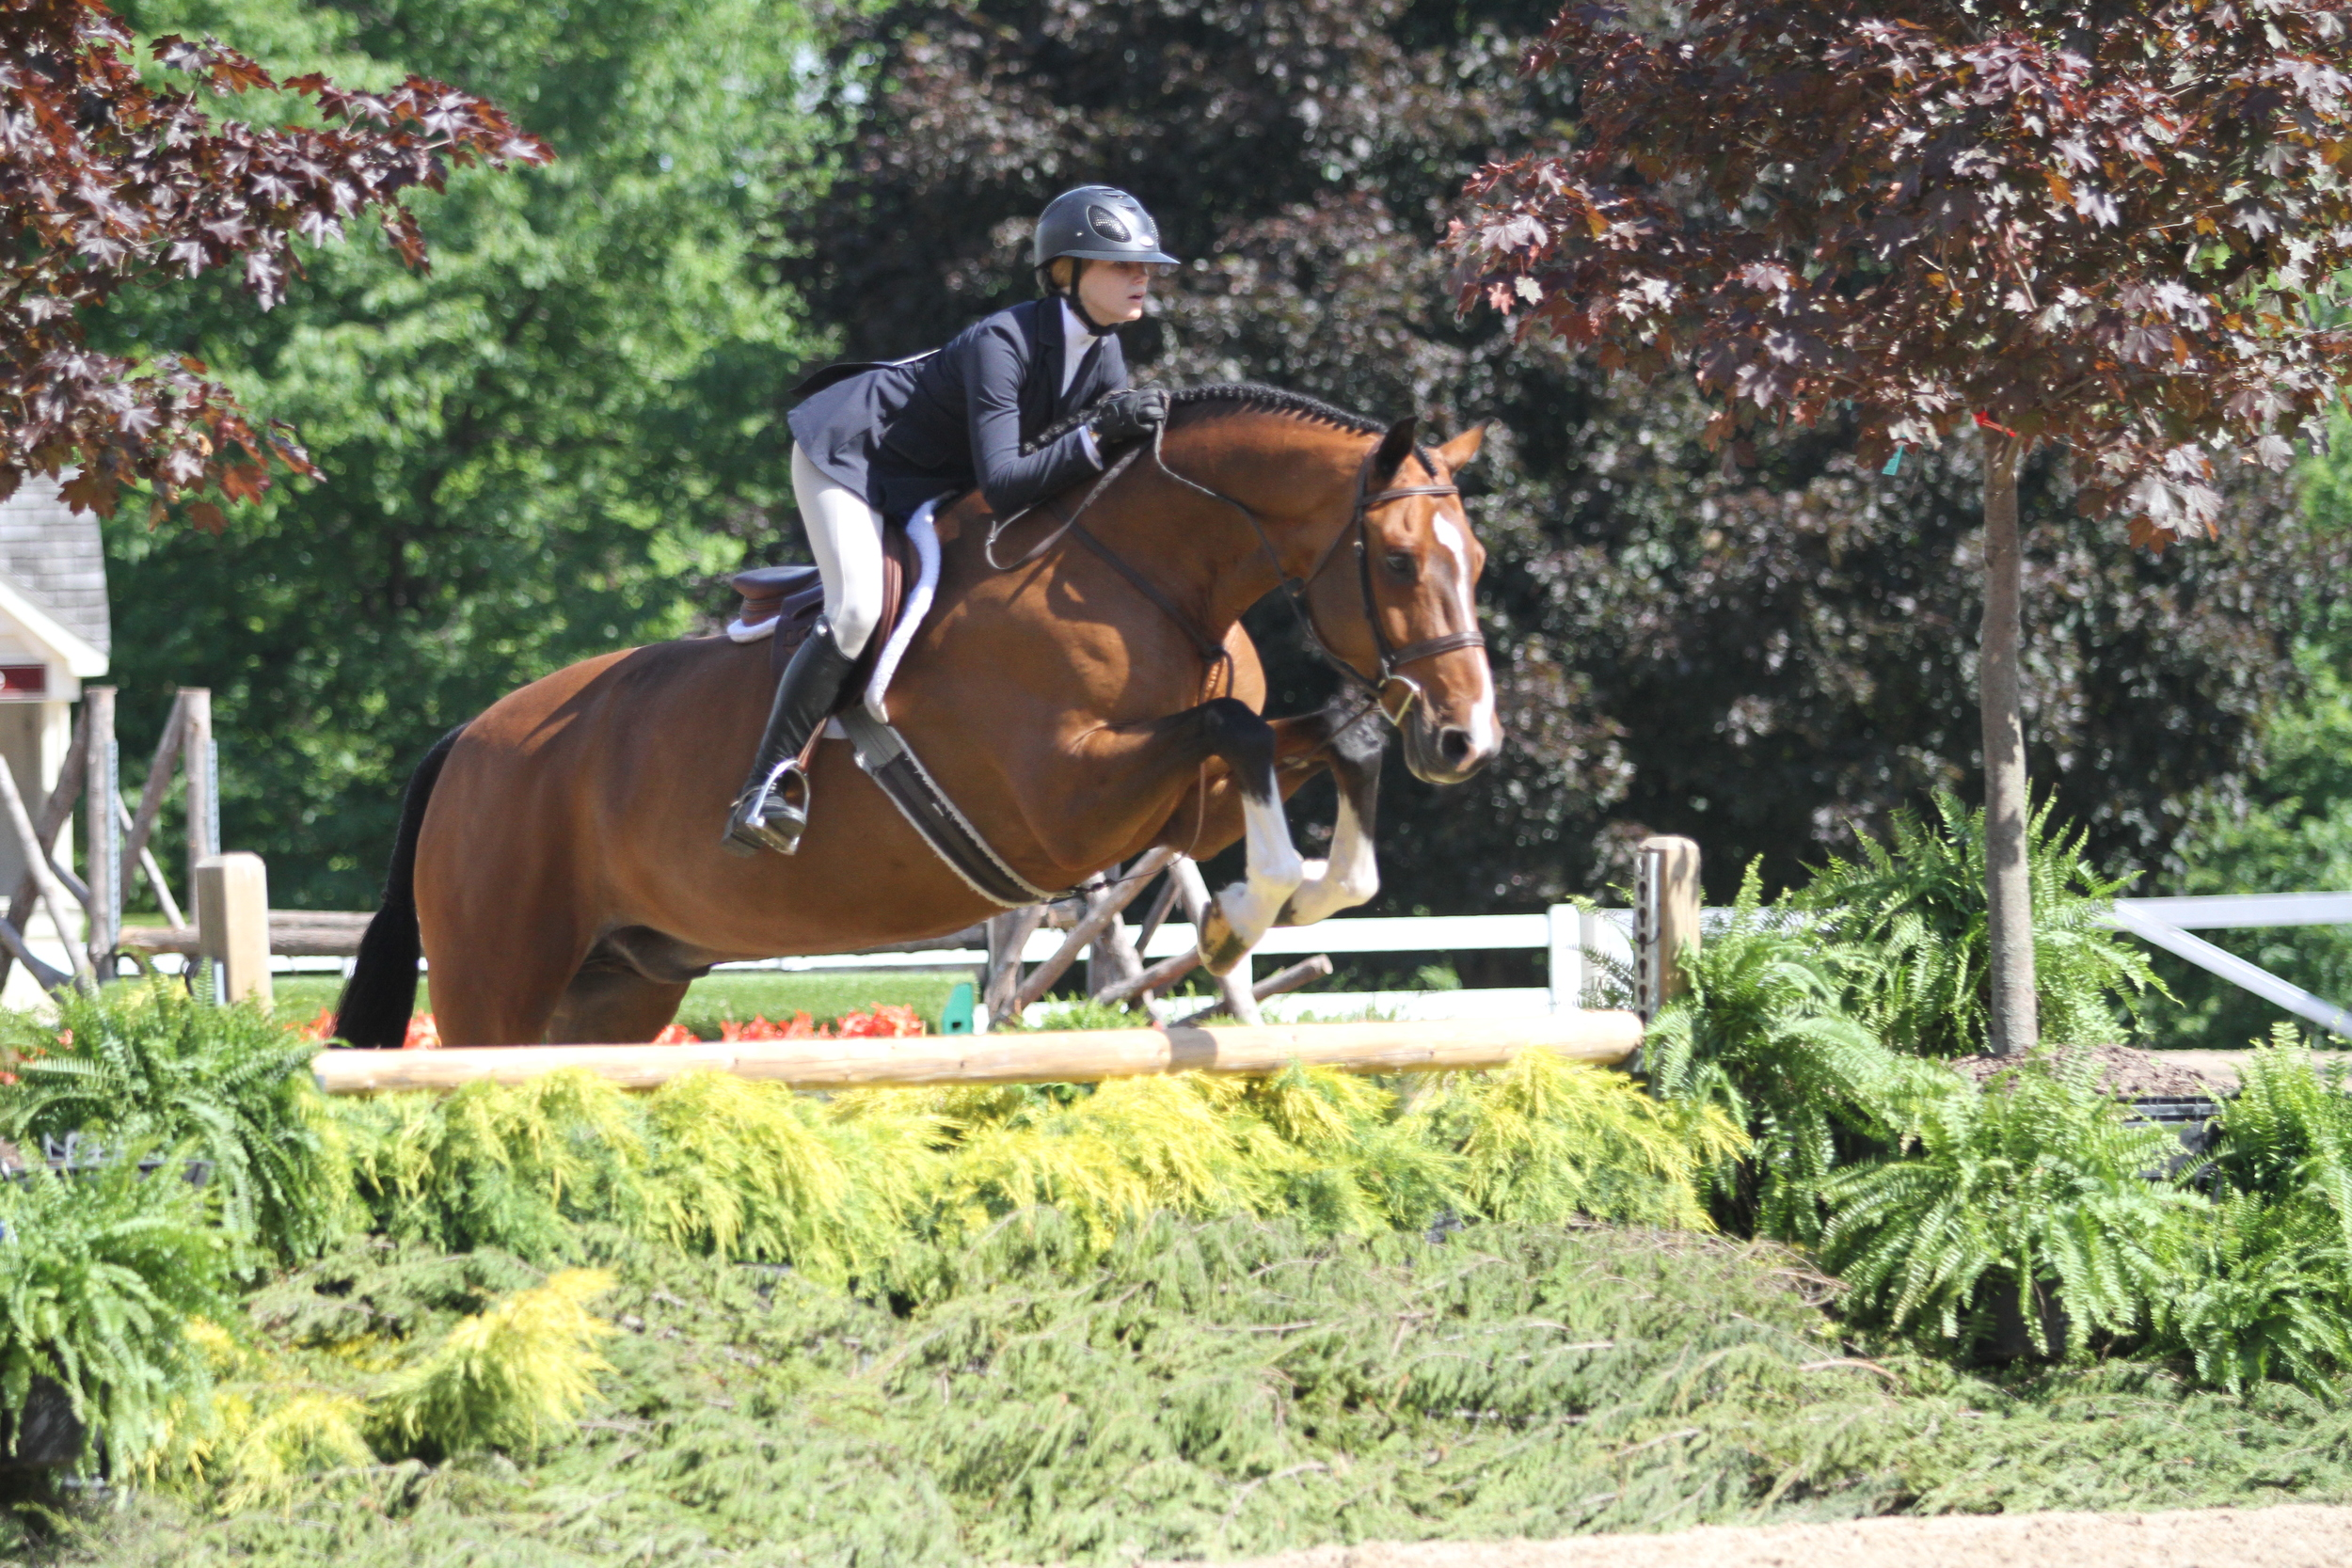 Large Junior Hunter Reserve Champion    Chalk Hill, owned by Kaley Roeske and ridden by Sloan Hopson, finished second in the large junior hunter behind barn-mate Coachella.